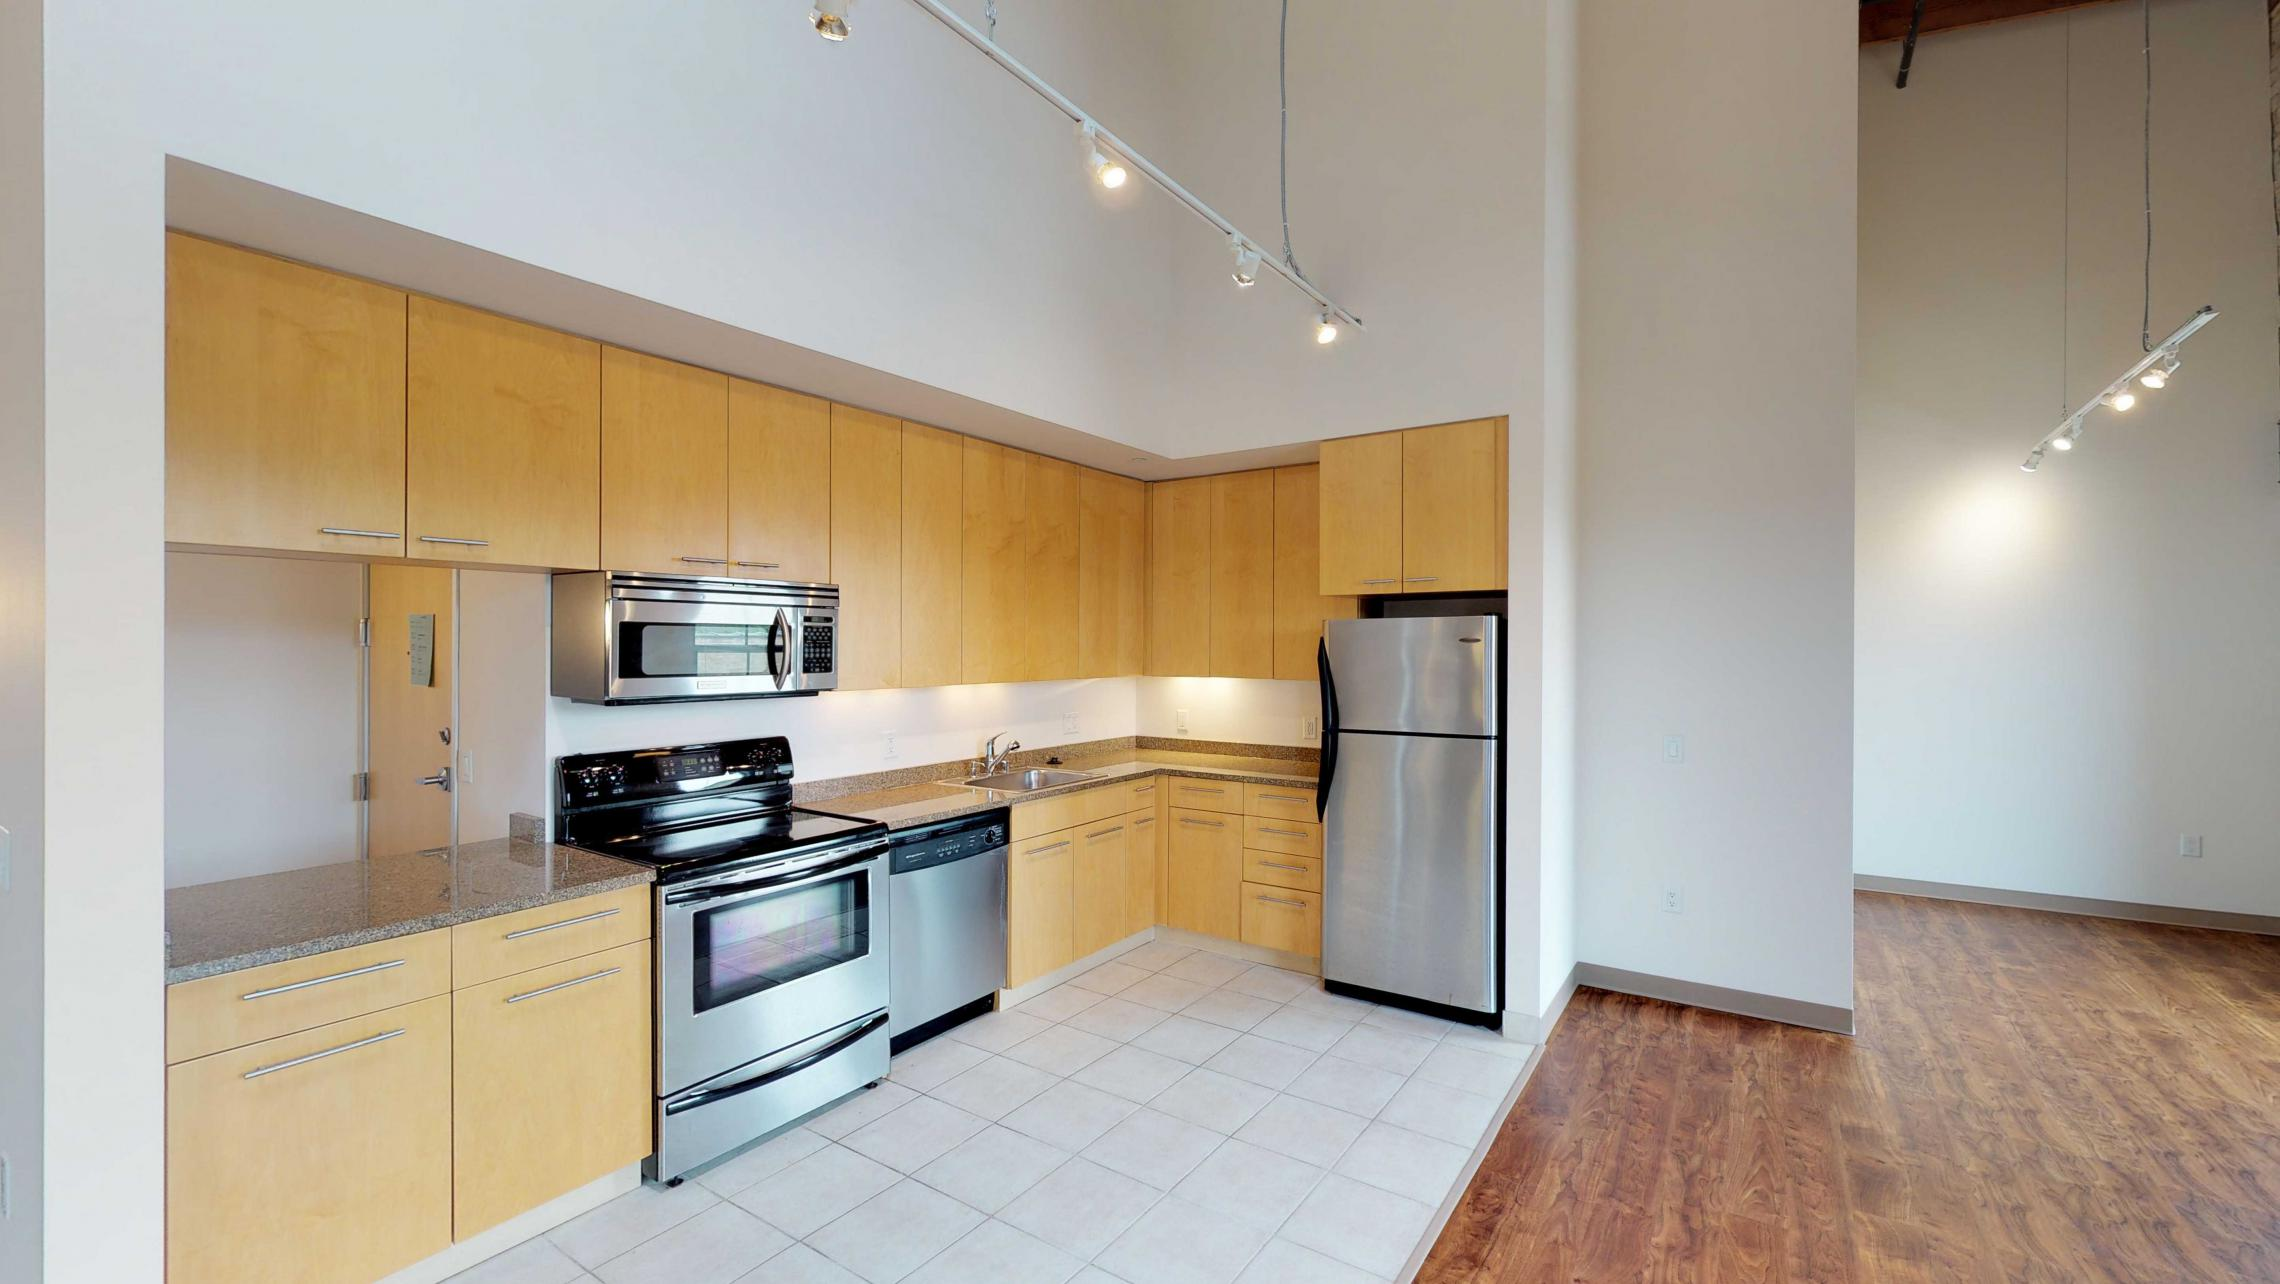 Tobacco-Lofts-Apartment-E306-Kitchen-Lofted-Two-Bedroom-Madison-Historic-Yards-Downtown-Exposed-brick.jpg